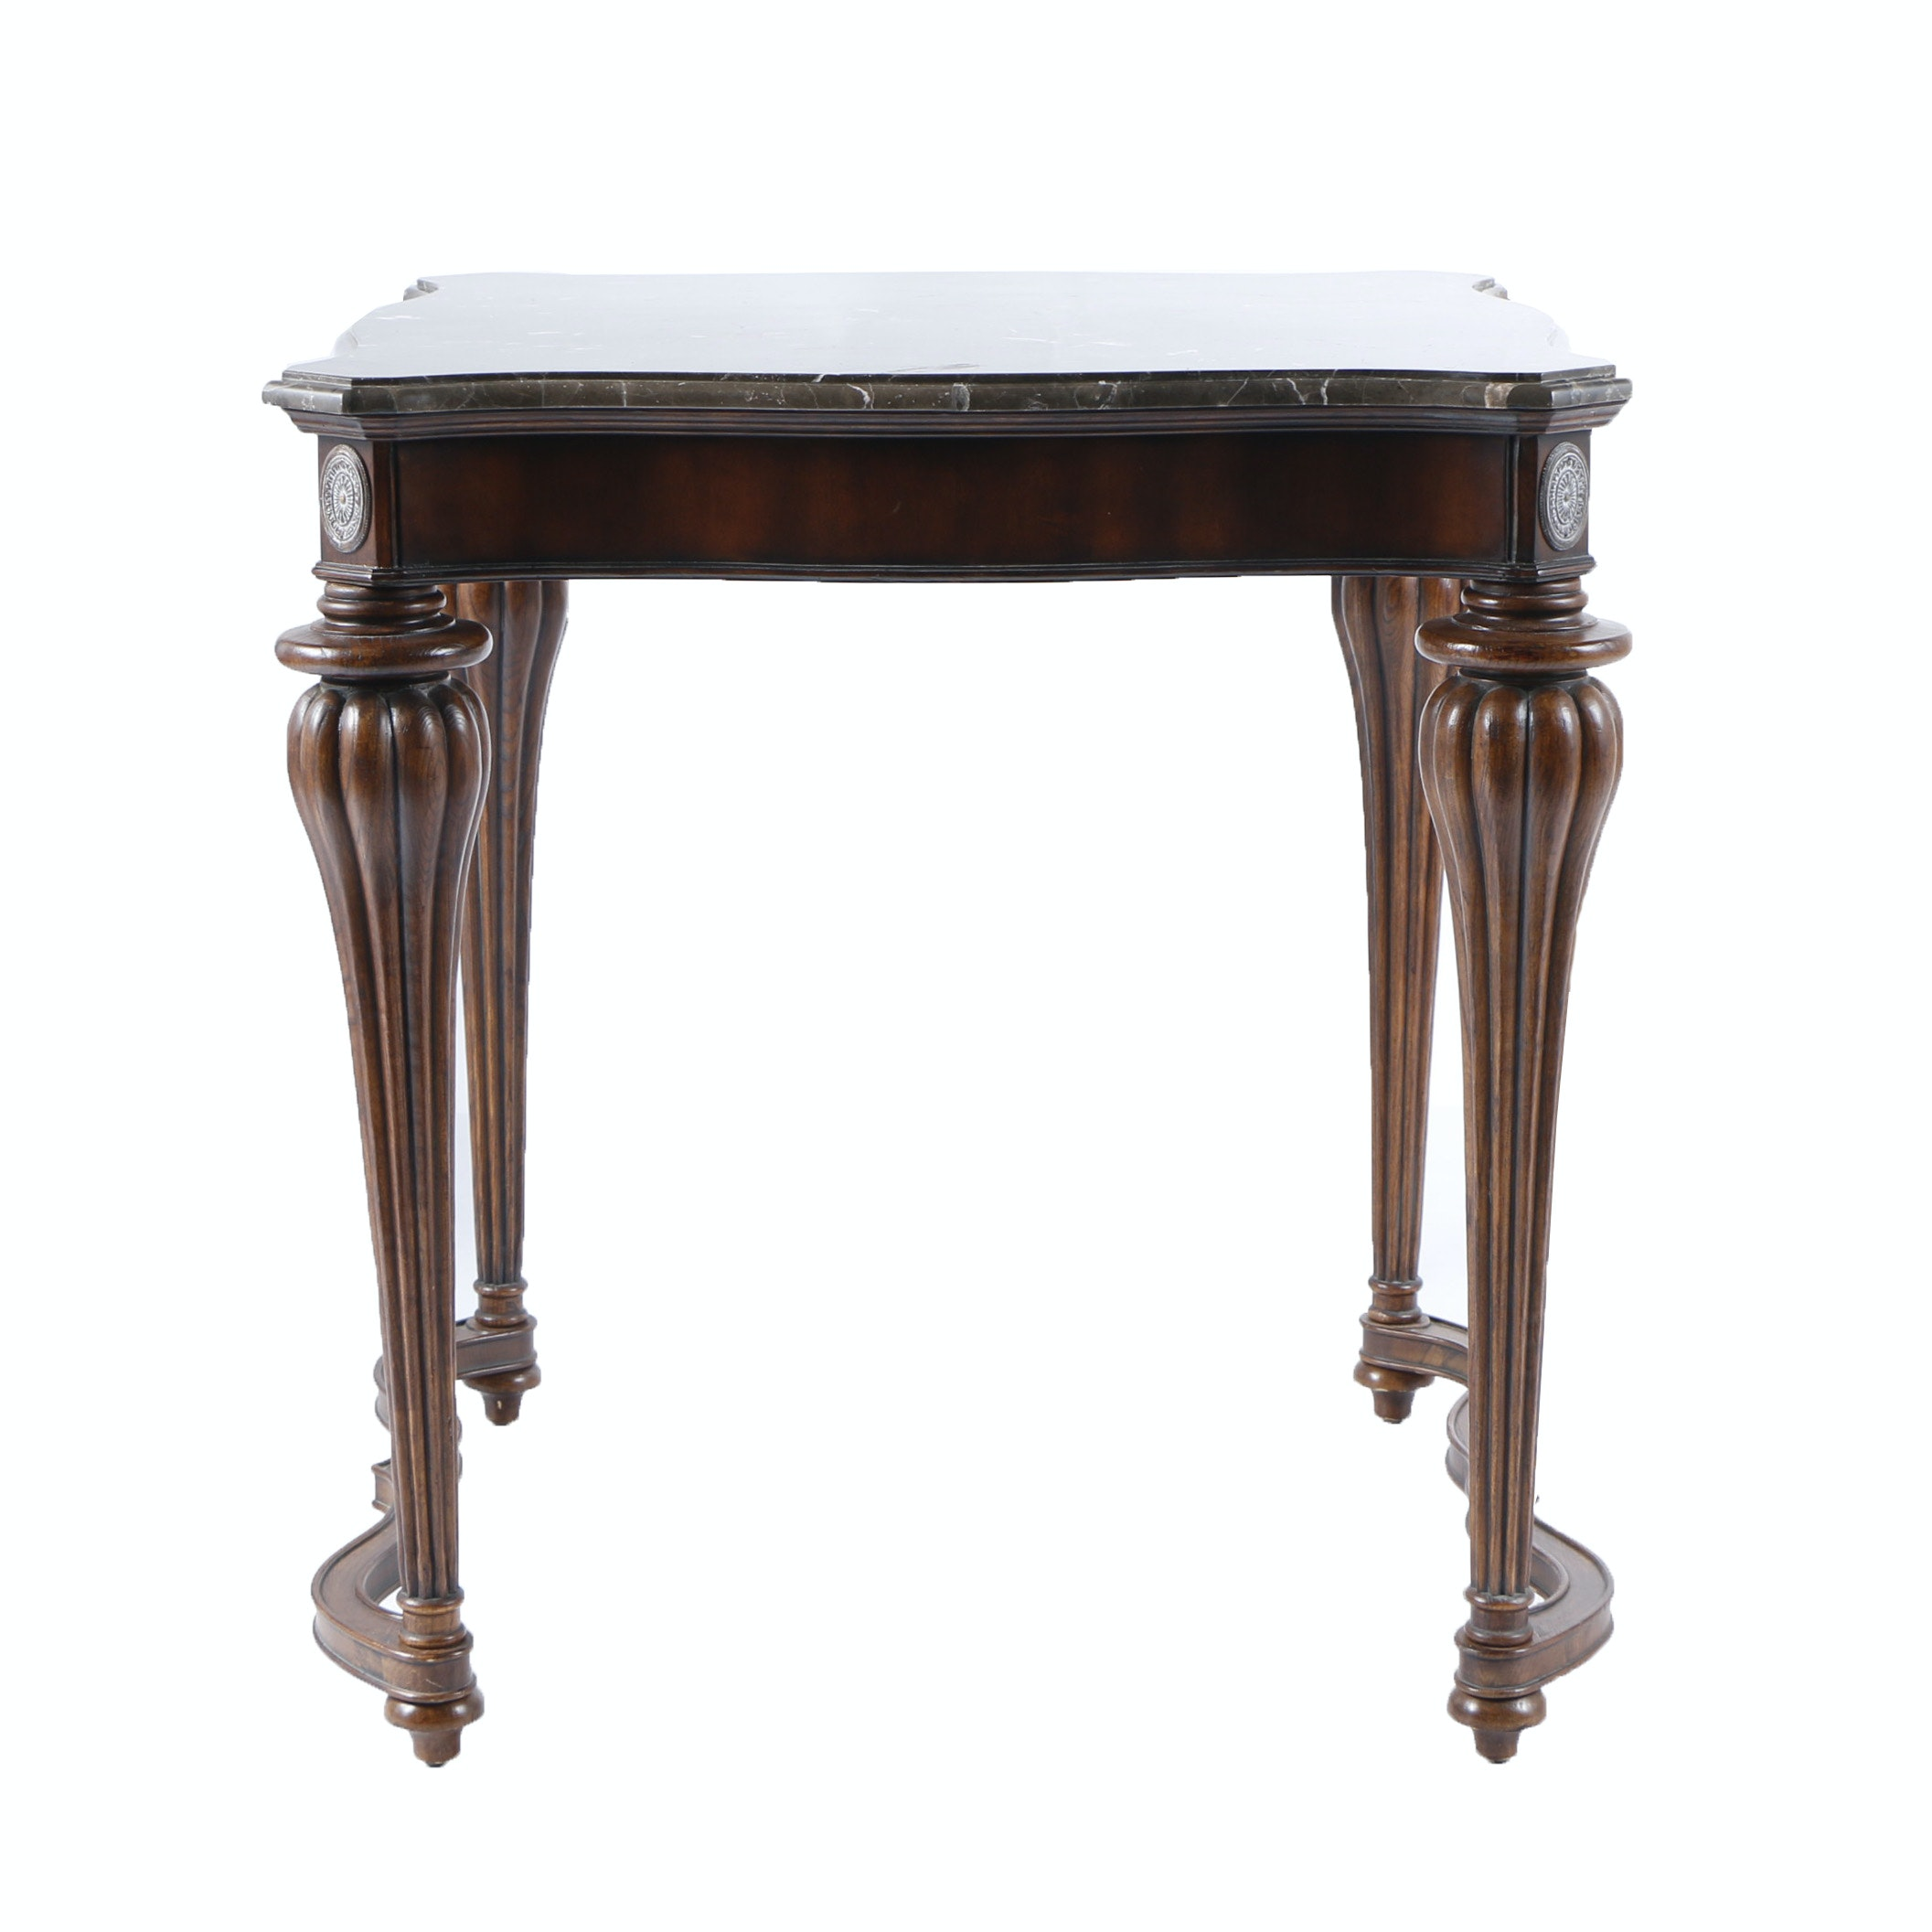 Contemporary Neoclassical Style Entry Table